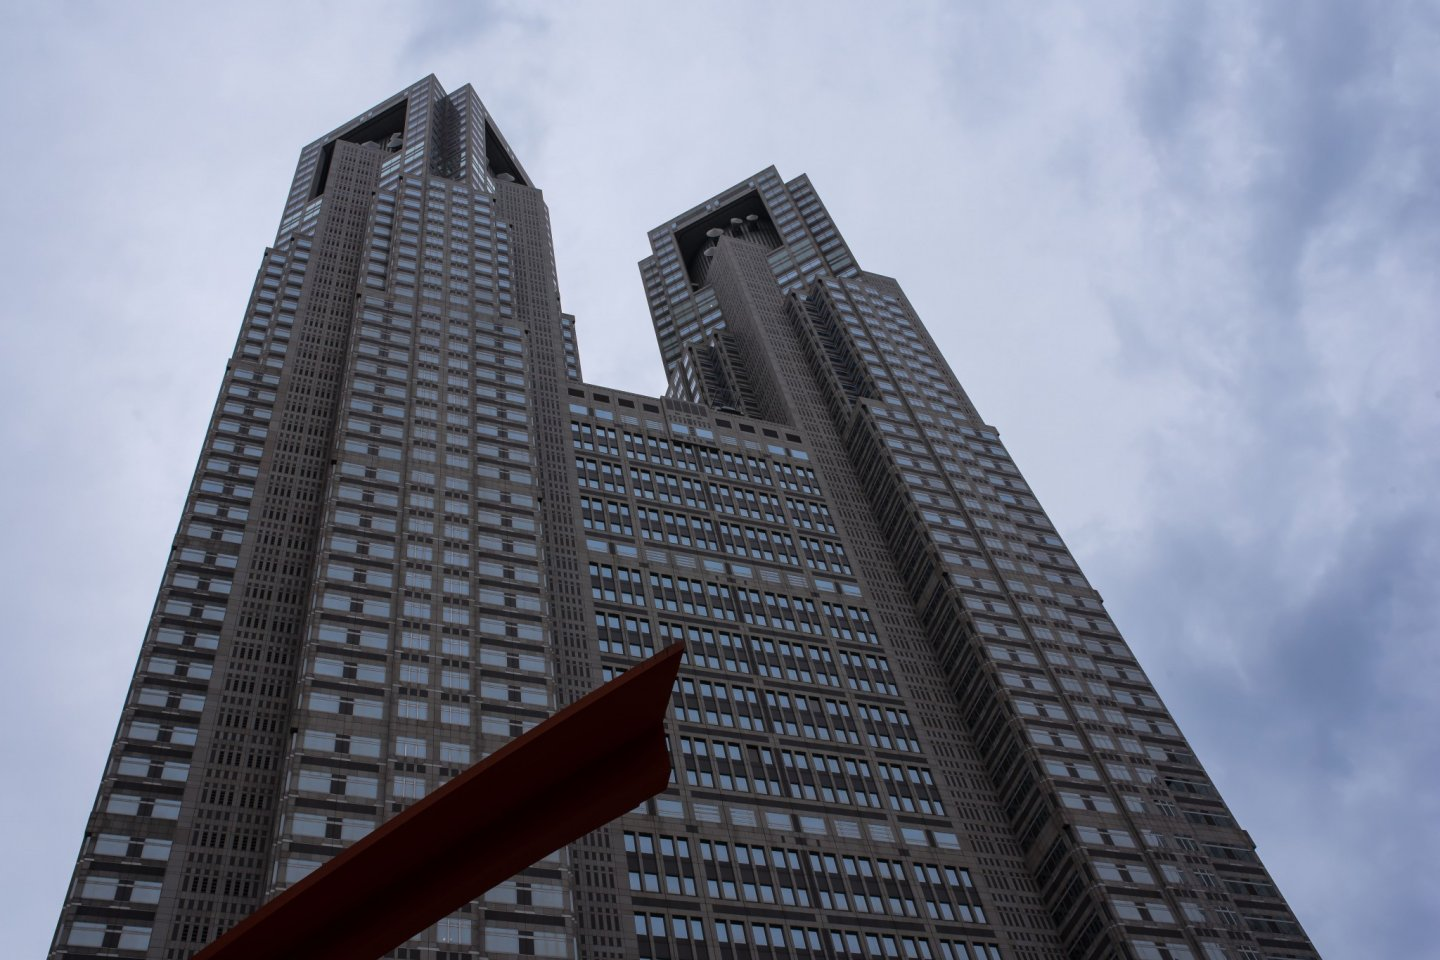 Towering over the west Shinjuku district